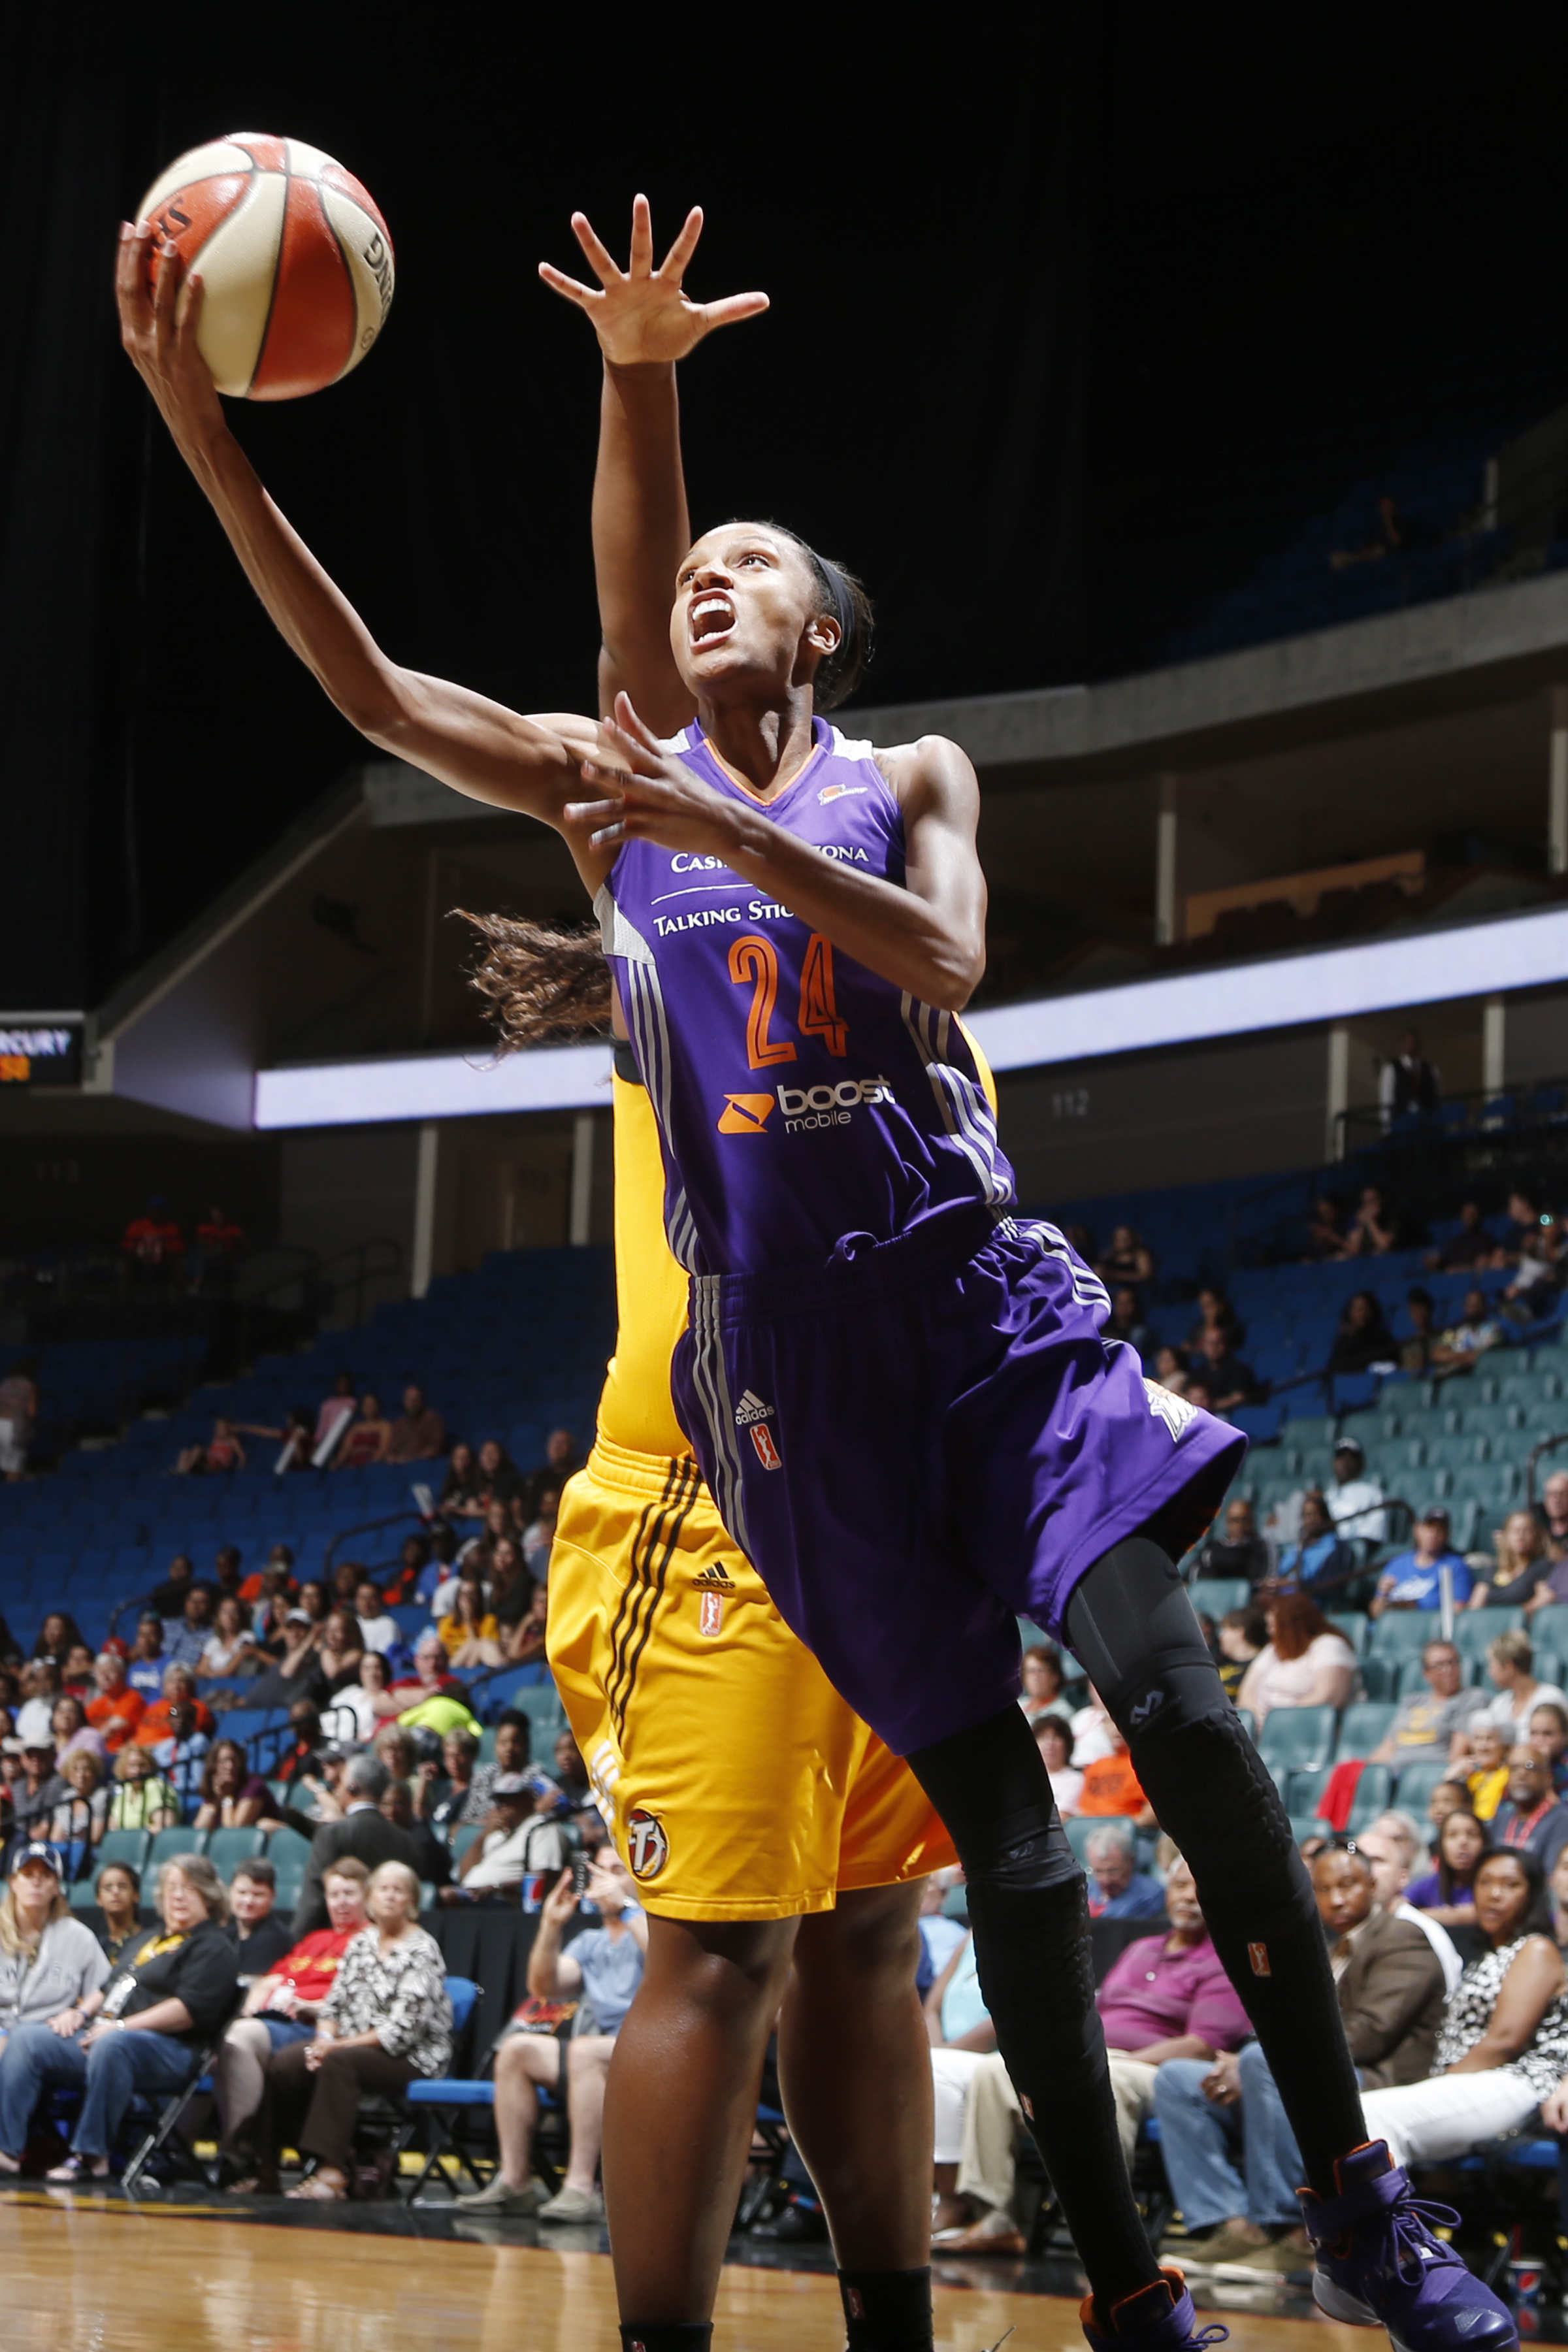 TULSA, OK - JULY 30:  DeWanna Bonner #24 of the Phoenix Mercury goes up for a shot against the Tulsa Shock on July 30, 2015 at the BOK Center in Tulsa, Oklahoma.  (Photo by Shane Bevel/NBAE via Getty Images)